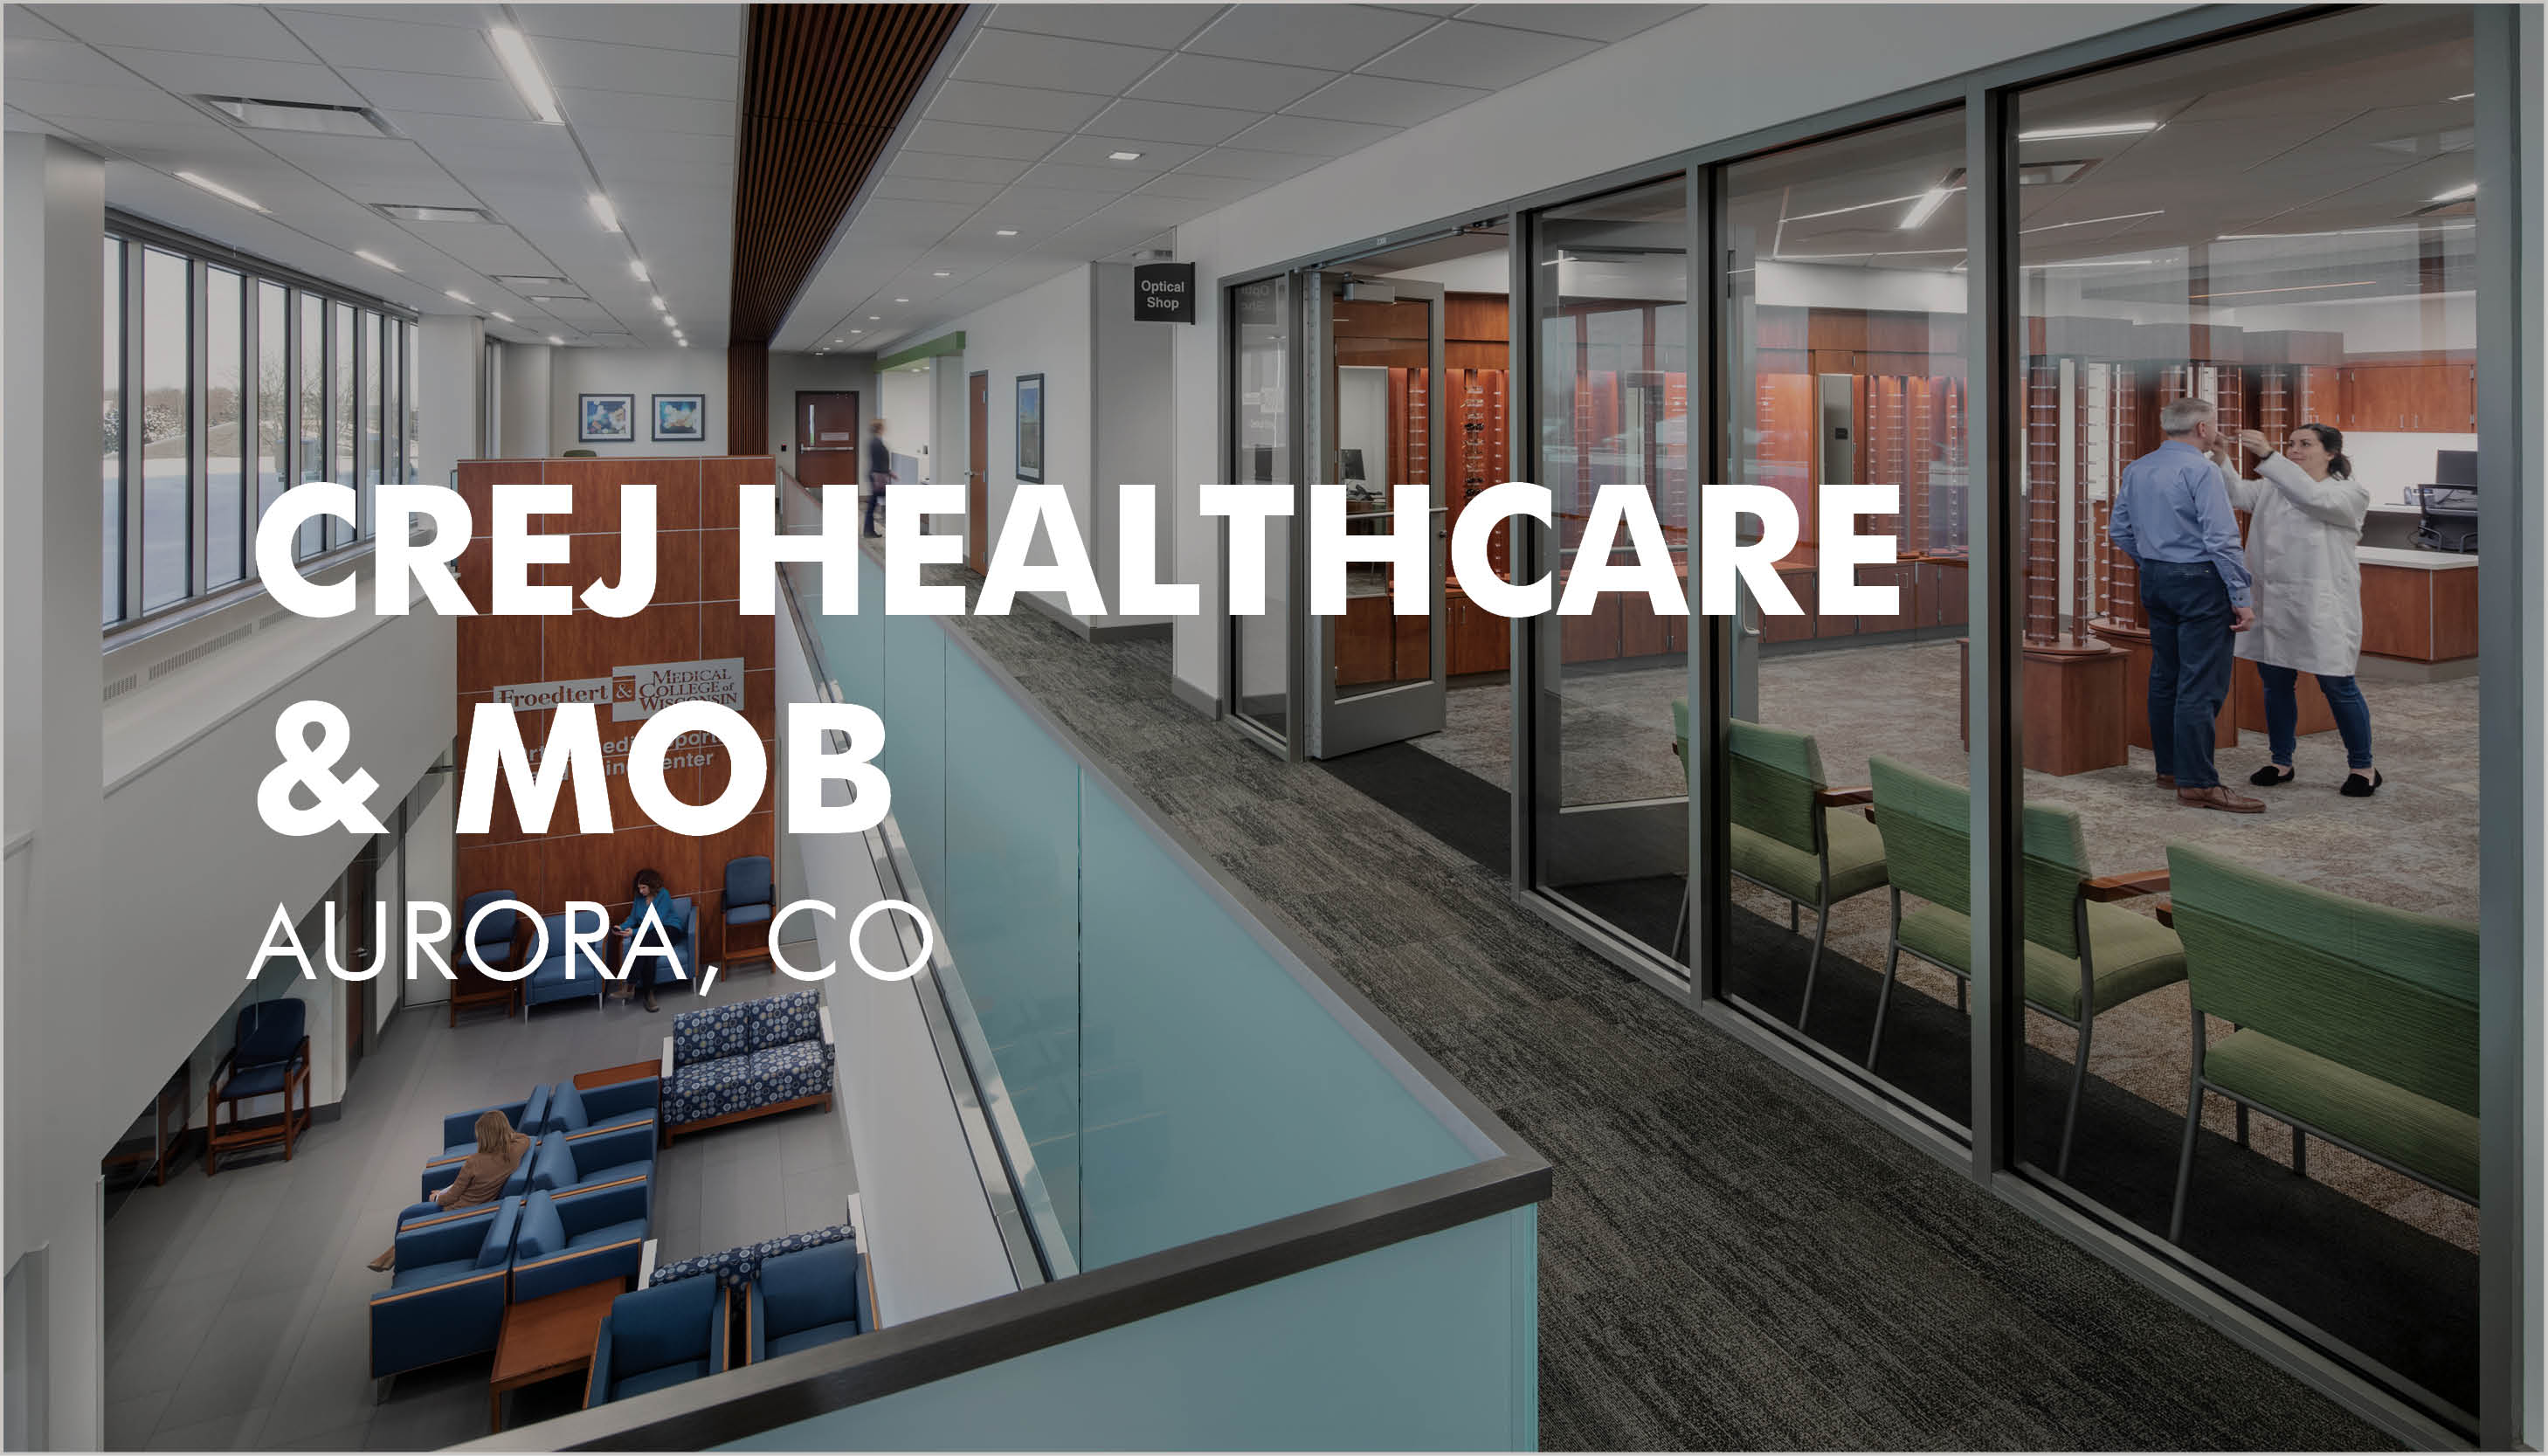 CREJ Health Care & MOB Conference 2019 Image